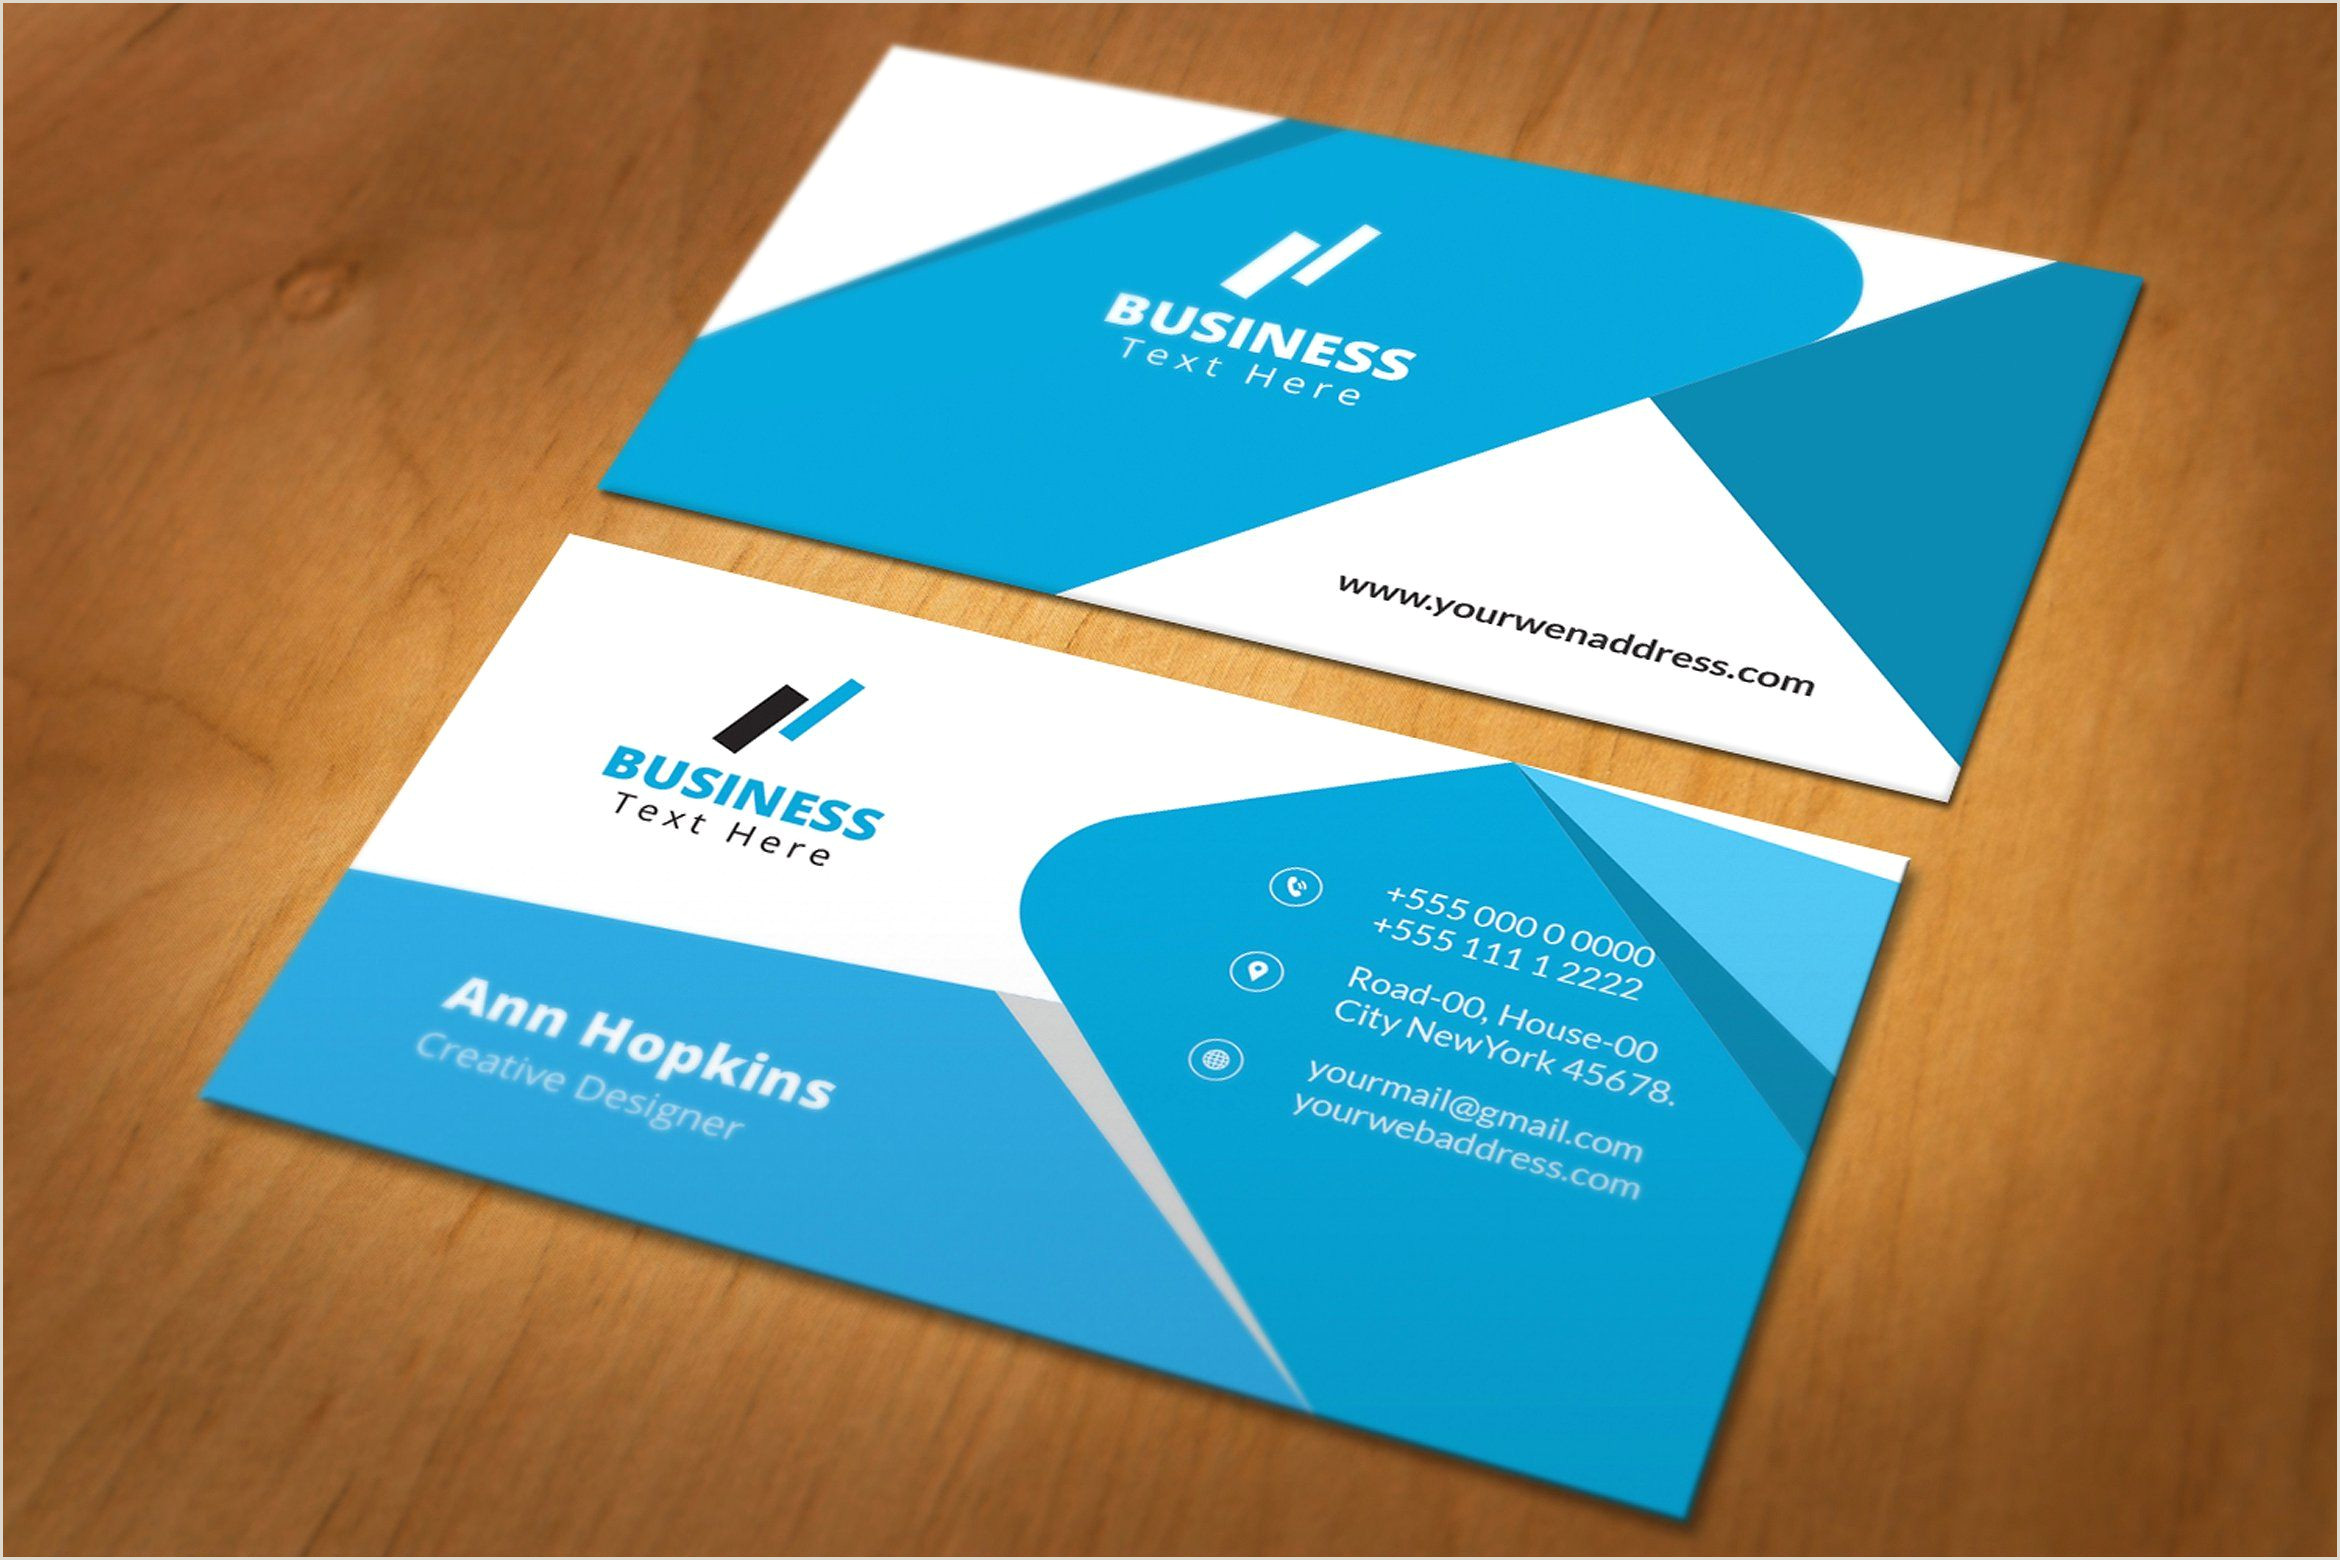 Business Cards With Personal Photo Business Card